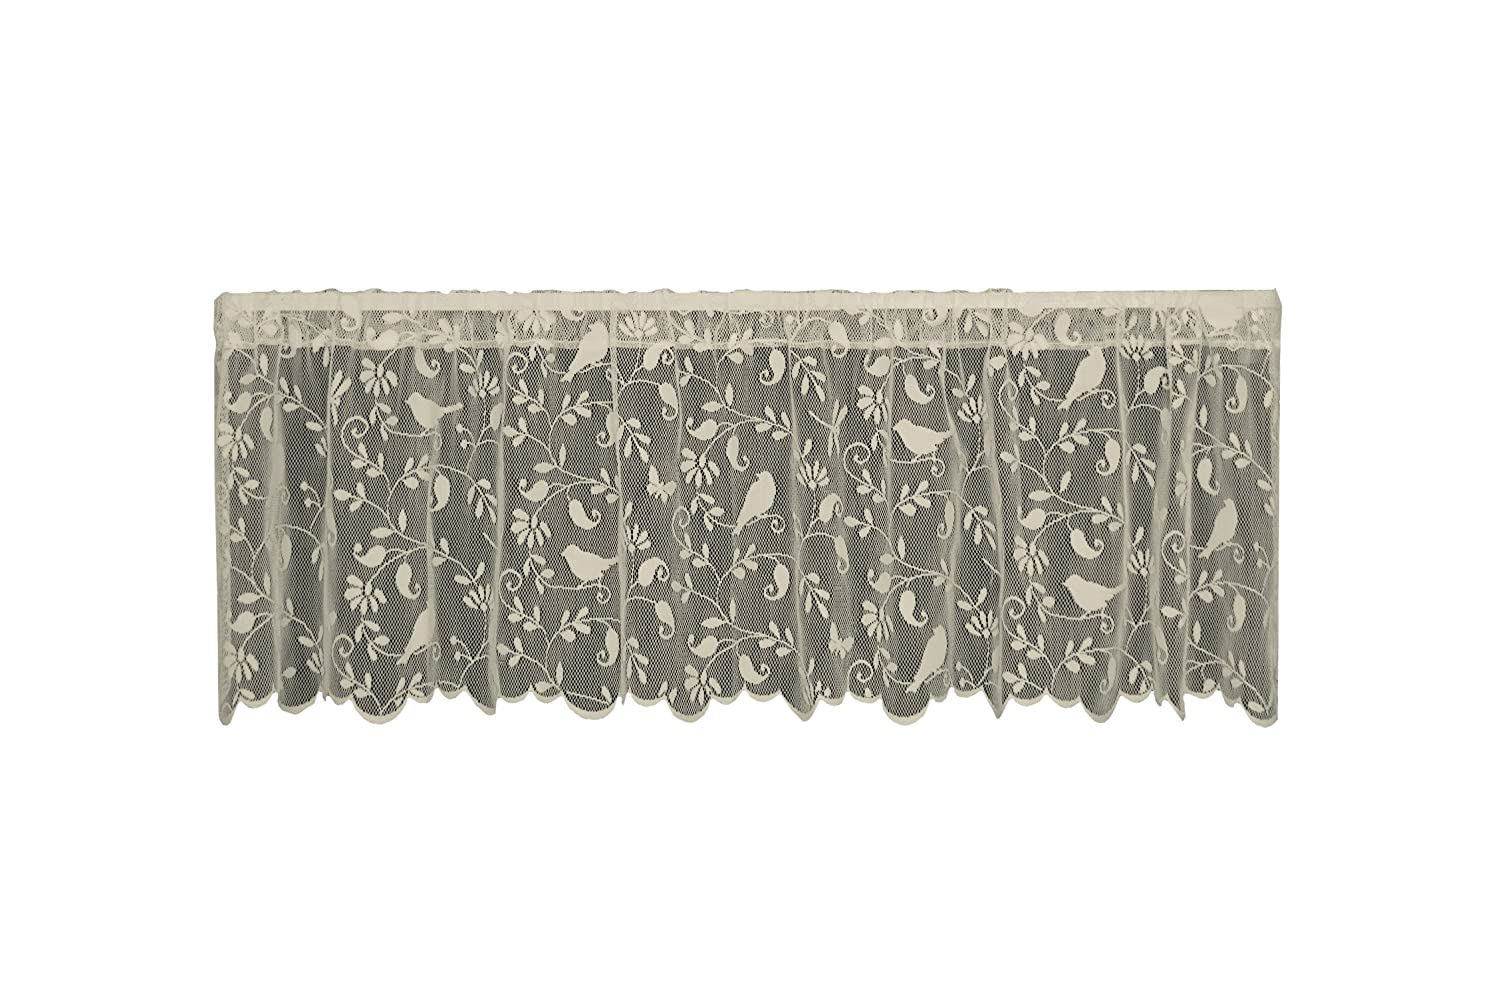 Heritage Lace Bristol Garden Valance, 60 by 18-Inch, Cafe 6305C-6018